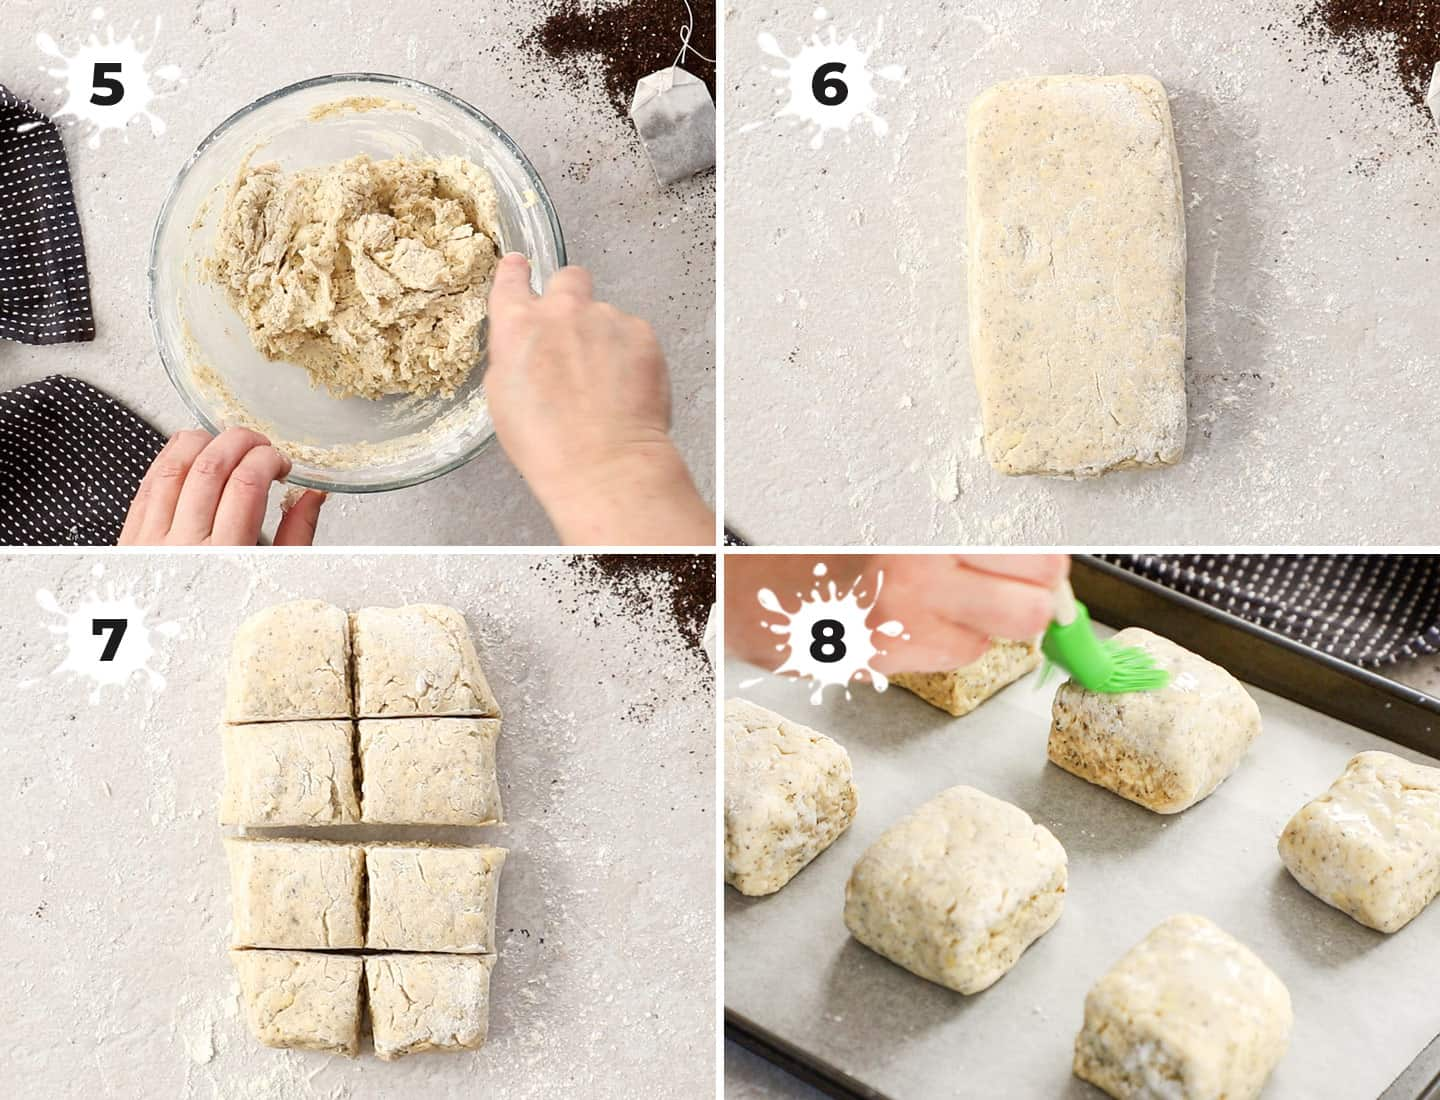 A collage of 4 images showing how to shape the scones.